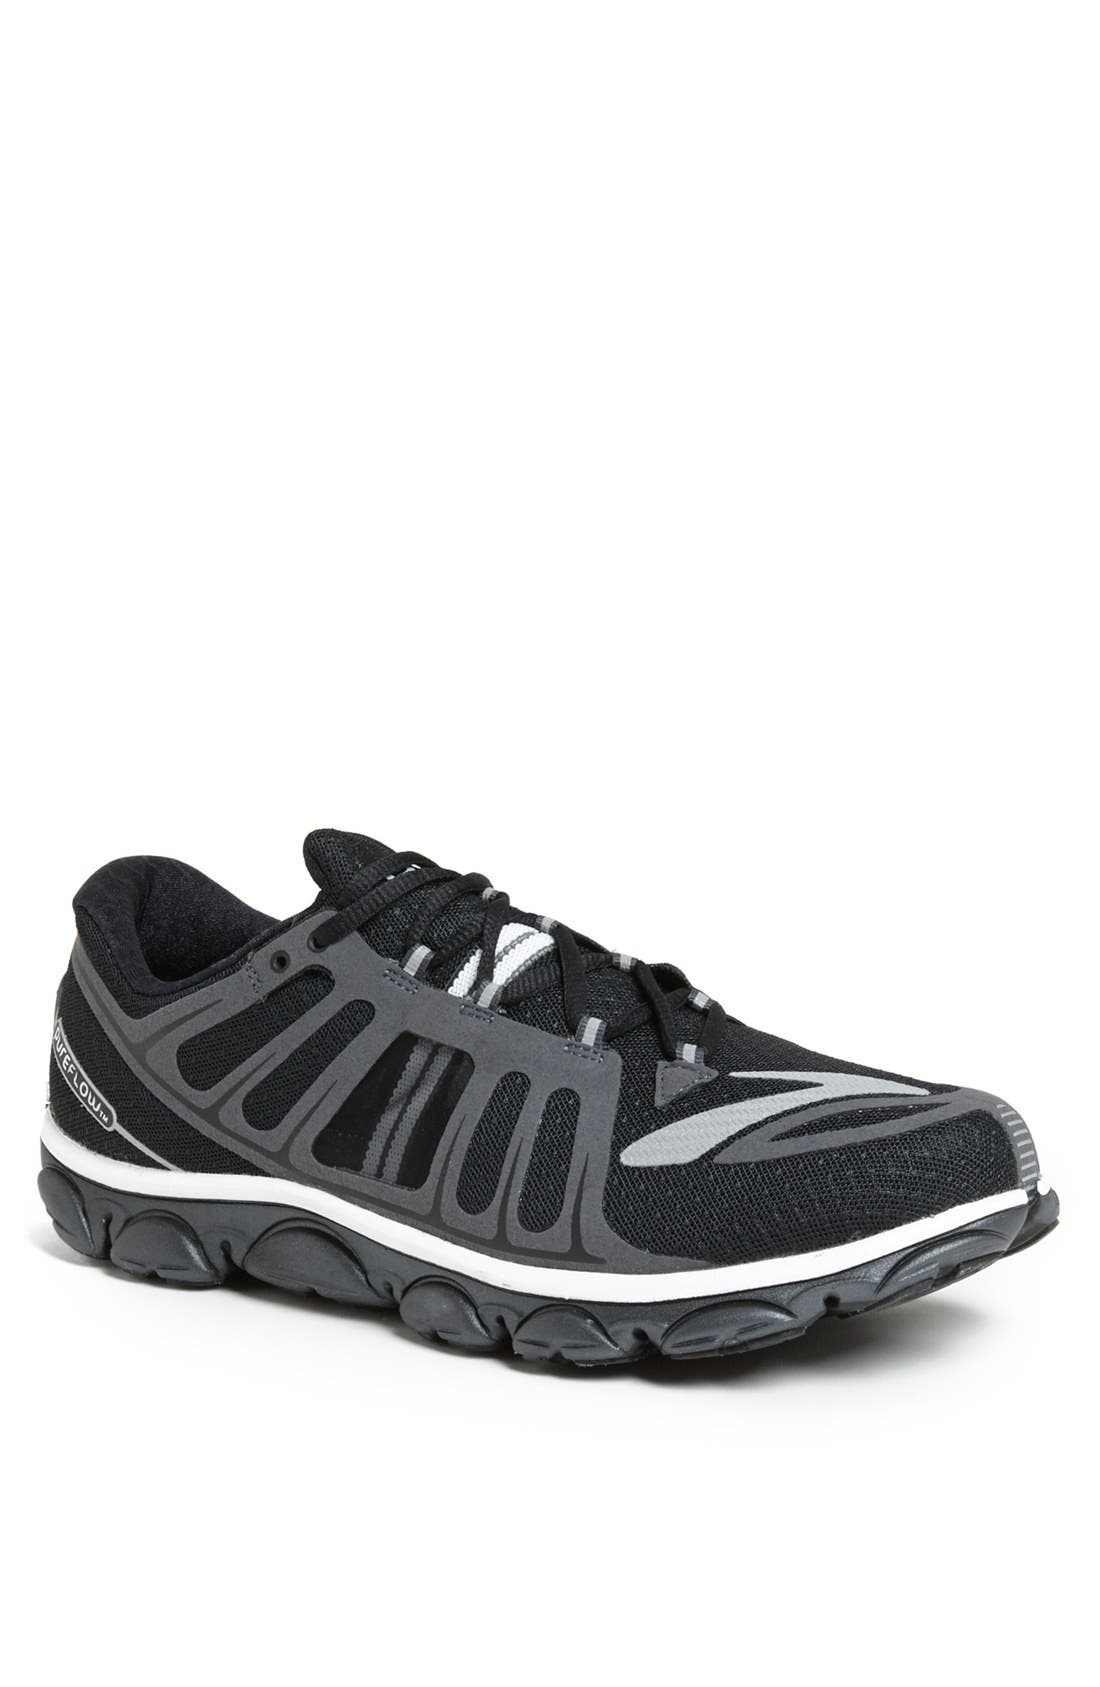 Main Image - Brooks 'PureFlow 2' Running Shoe (Men)